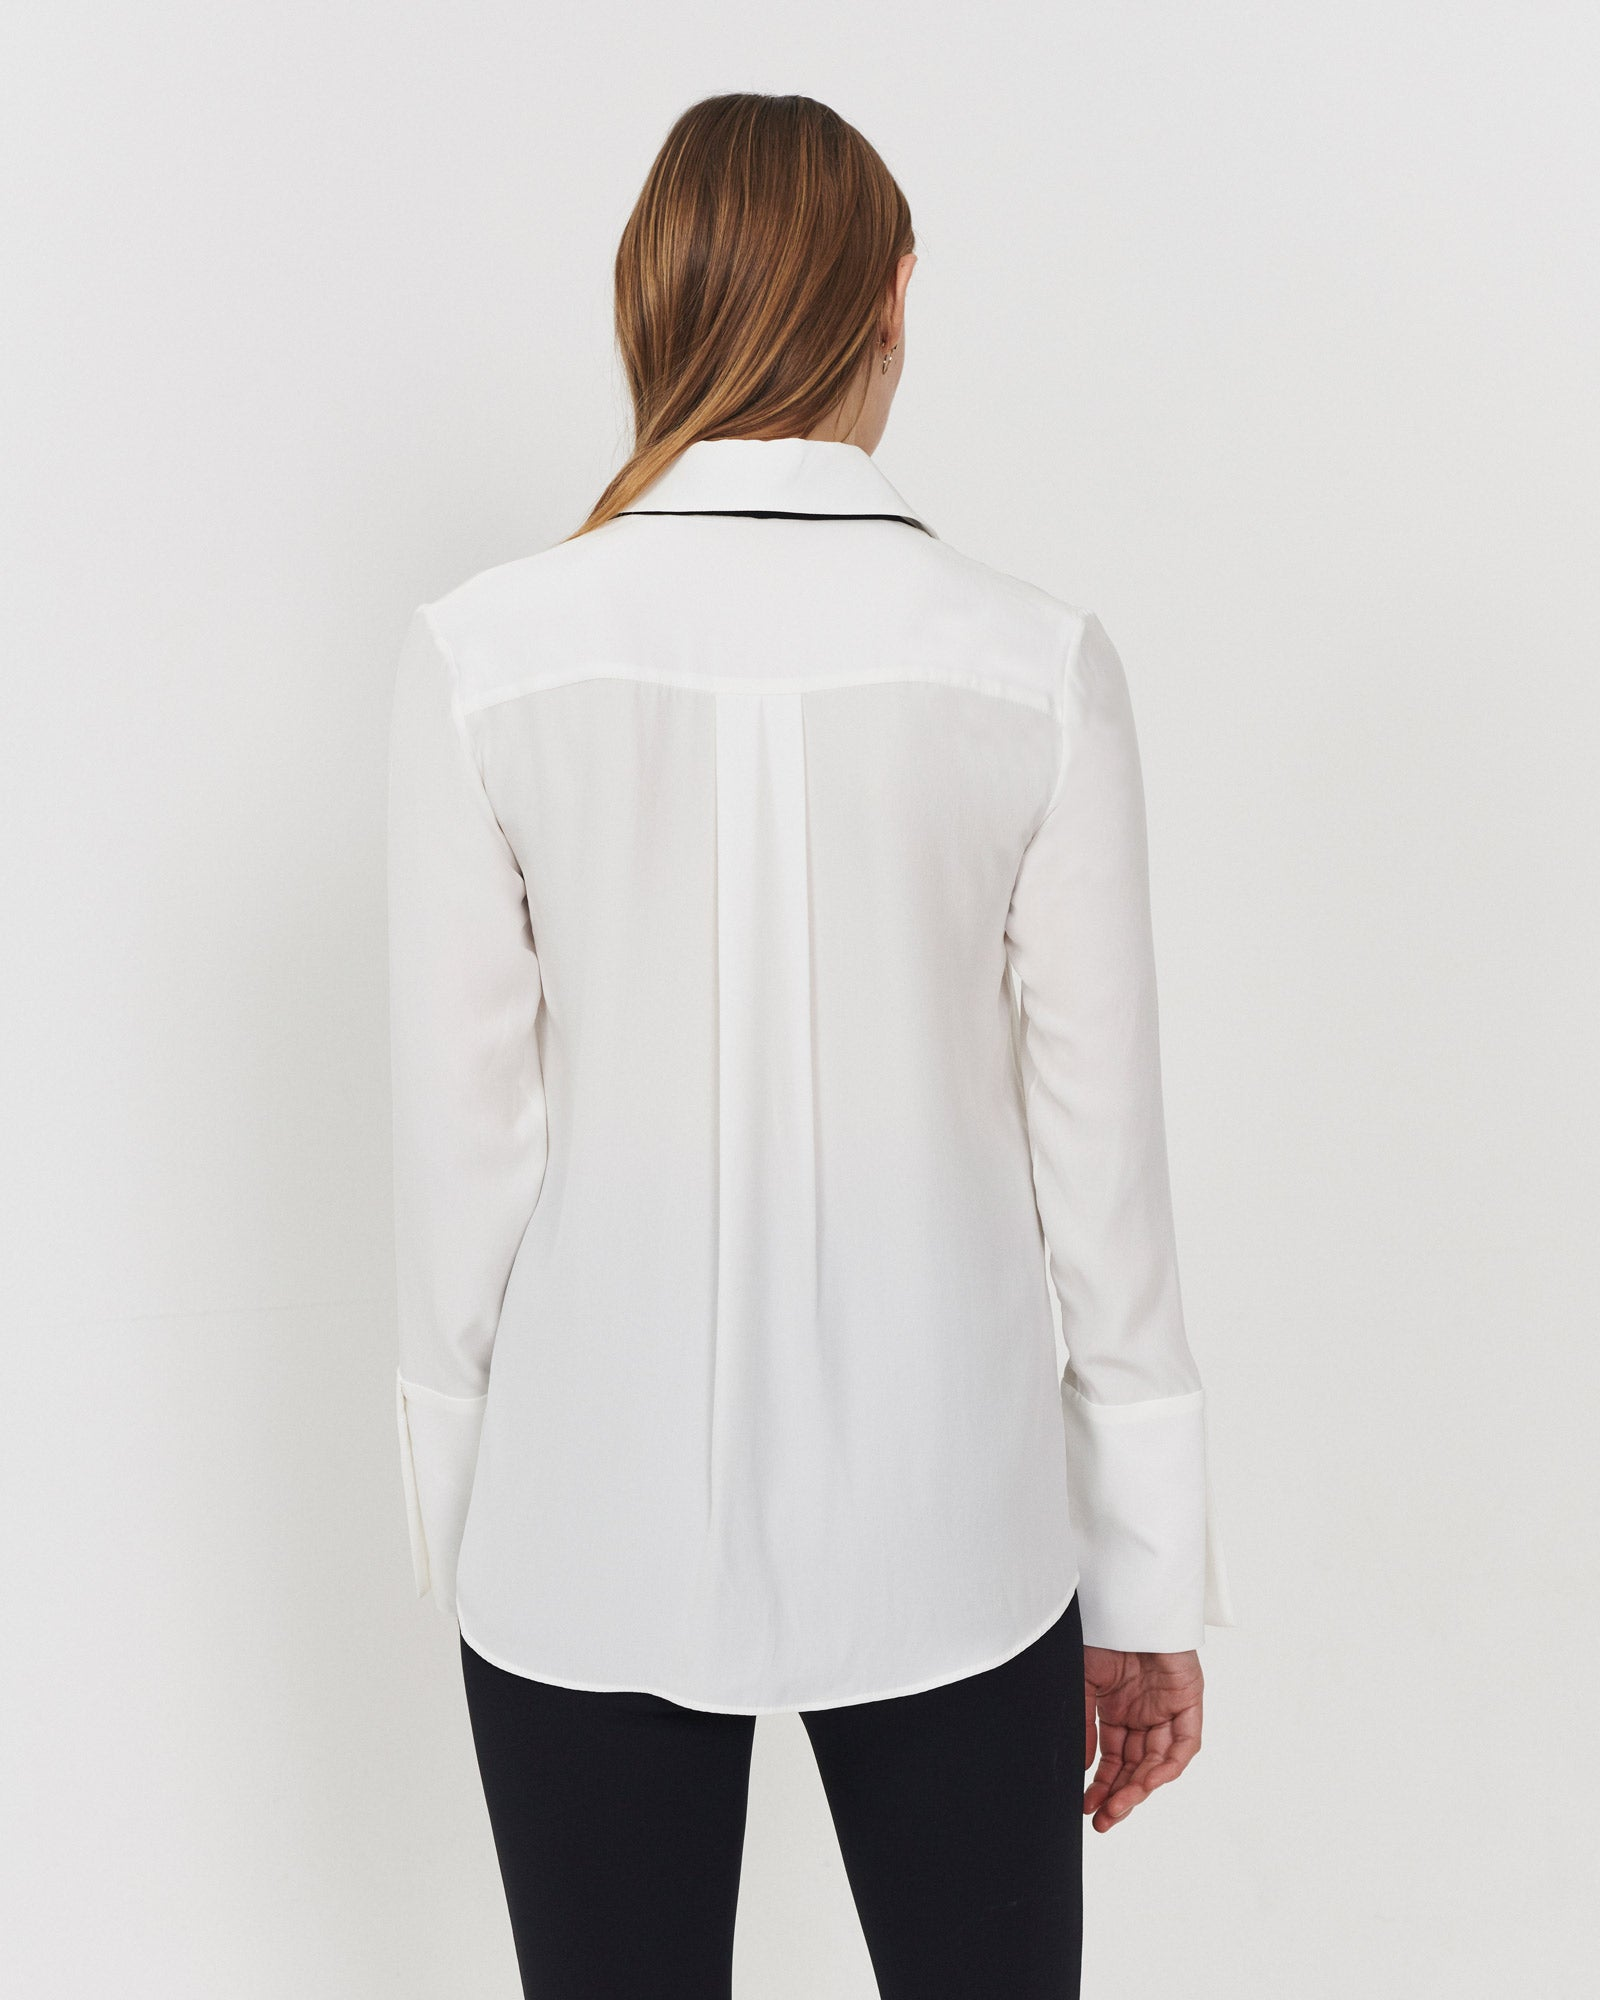 Now and Forever Blouse Ivory Silk 2.0